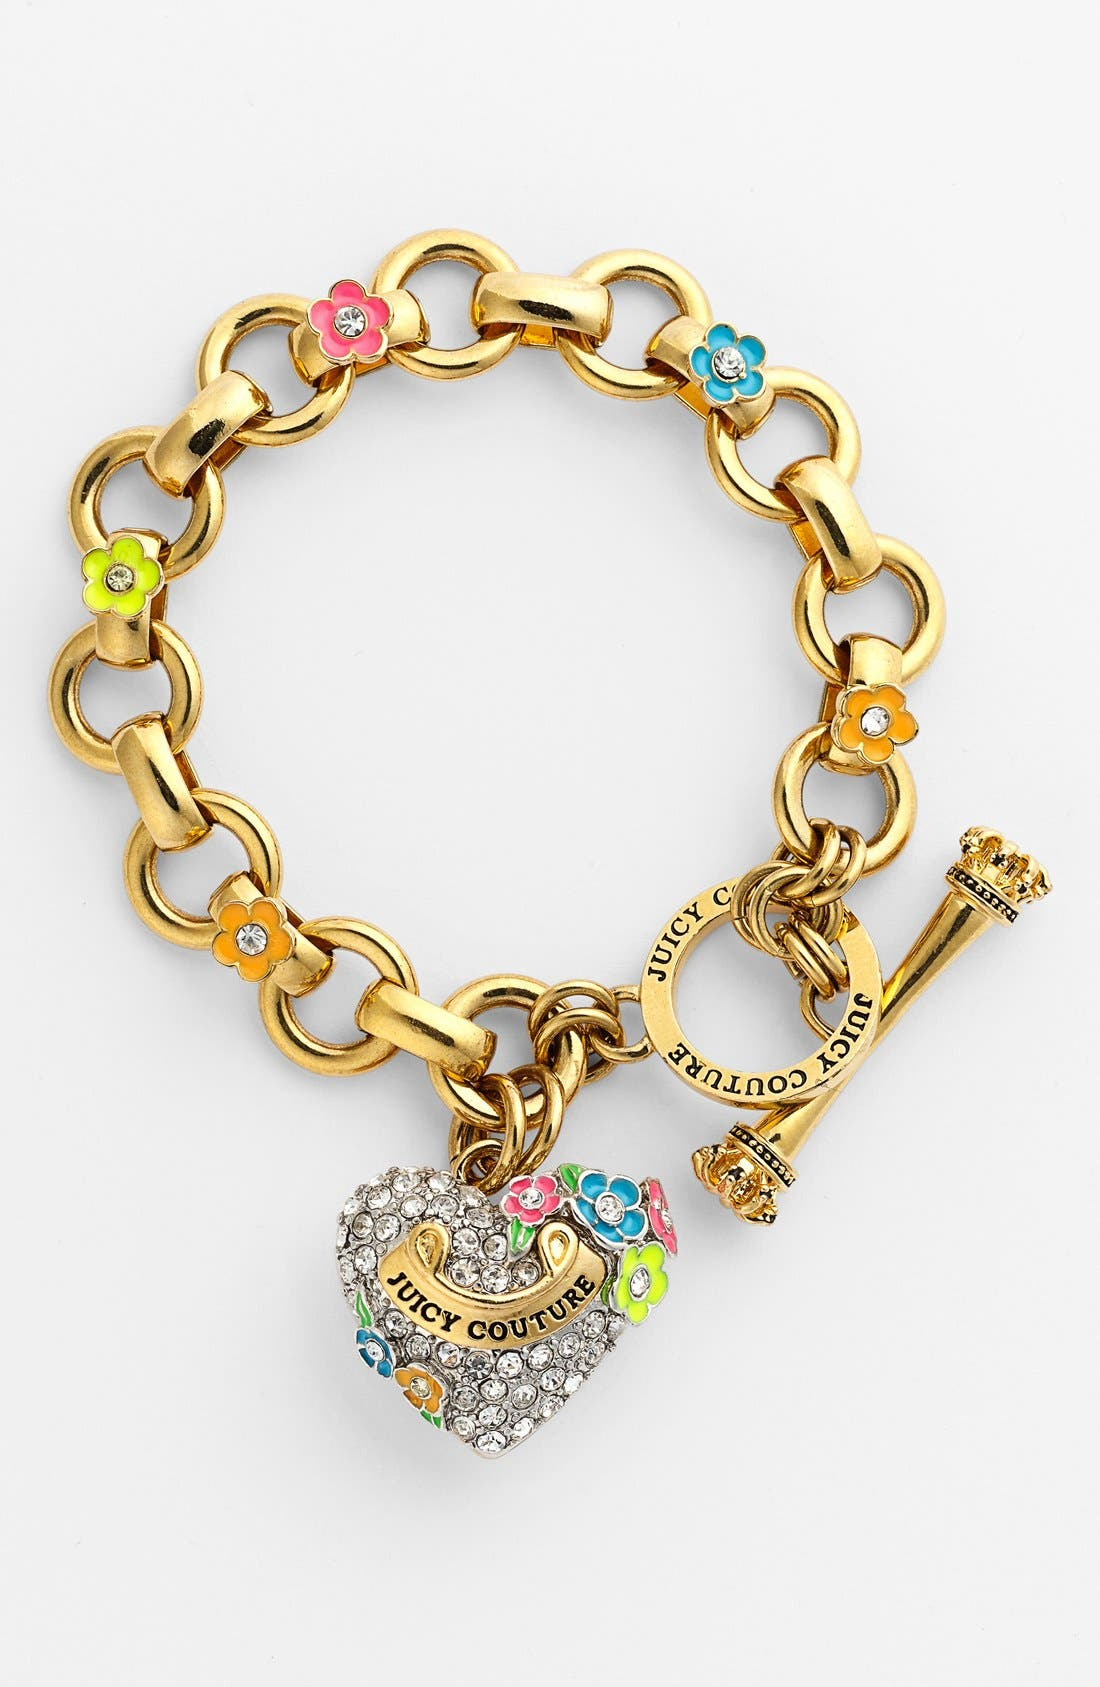 Main Image - Juicy Couture 'Blooming Hearts' Charm Bracelet